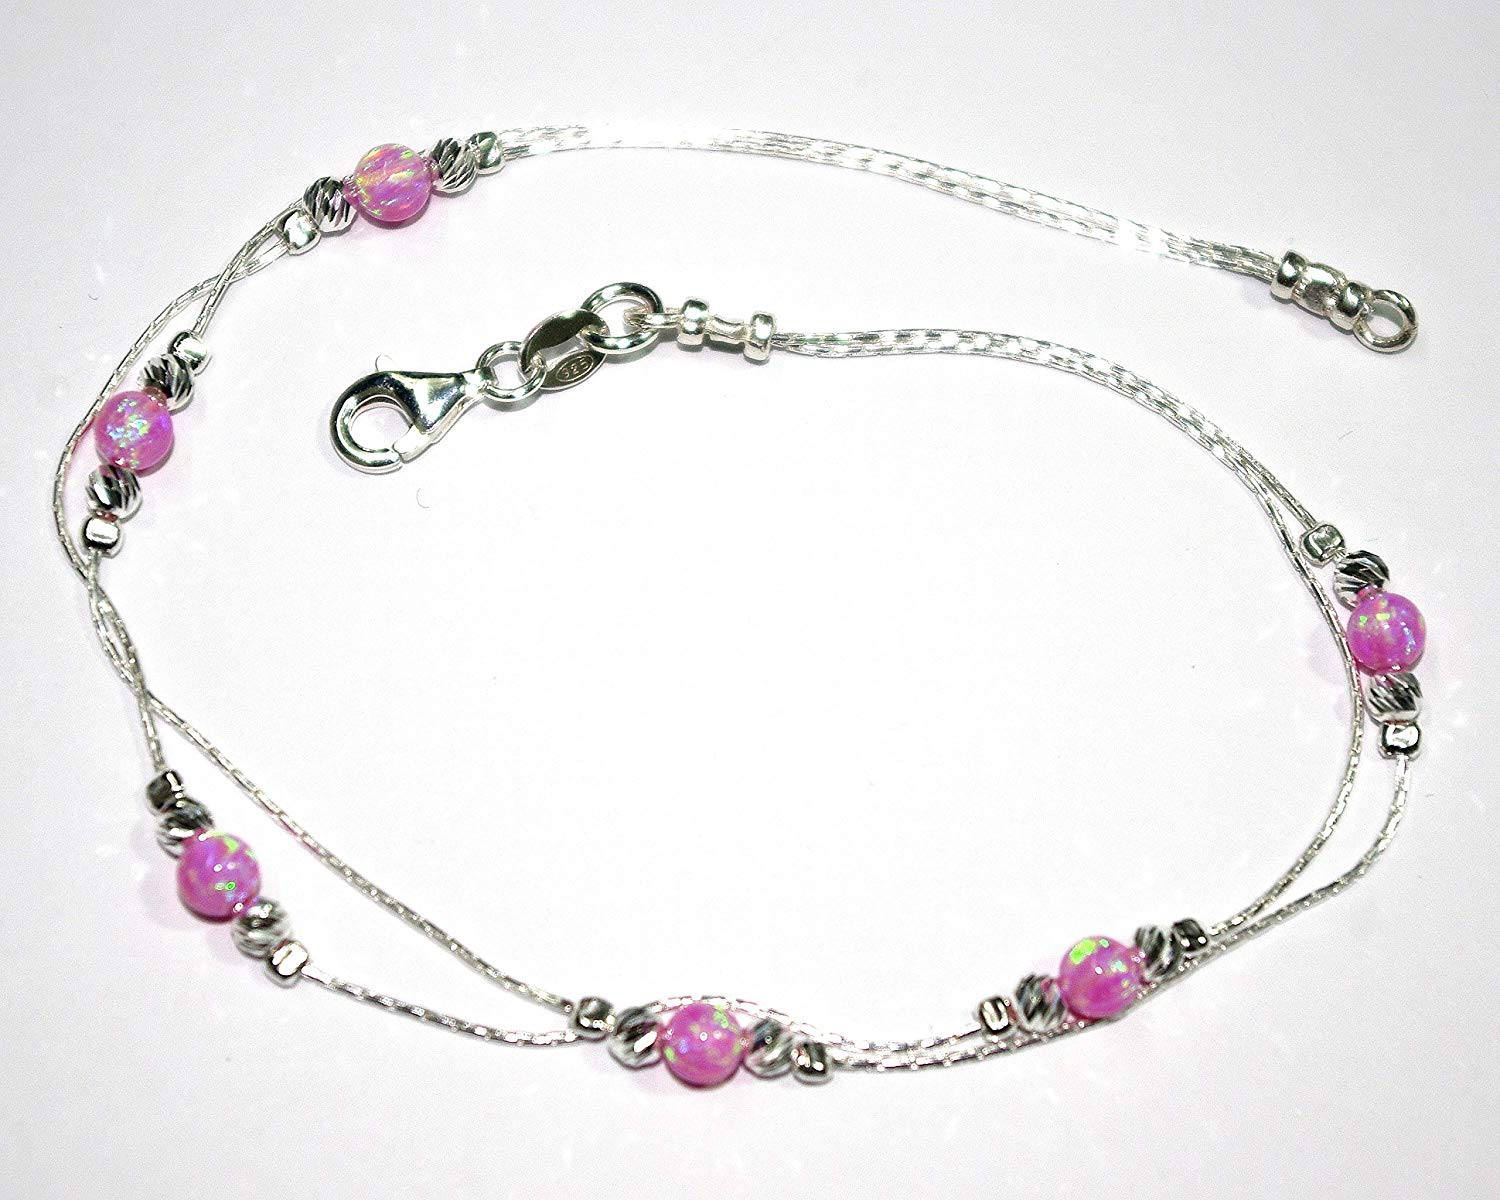 Genuine 925 Sterling Silver Chains and Laser Cut Beads with 4mm Pink OPAL Beads TWO STRANDS ANKLET - Made to your size